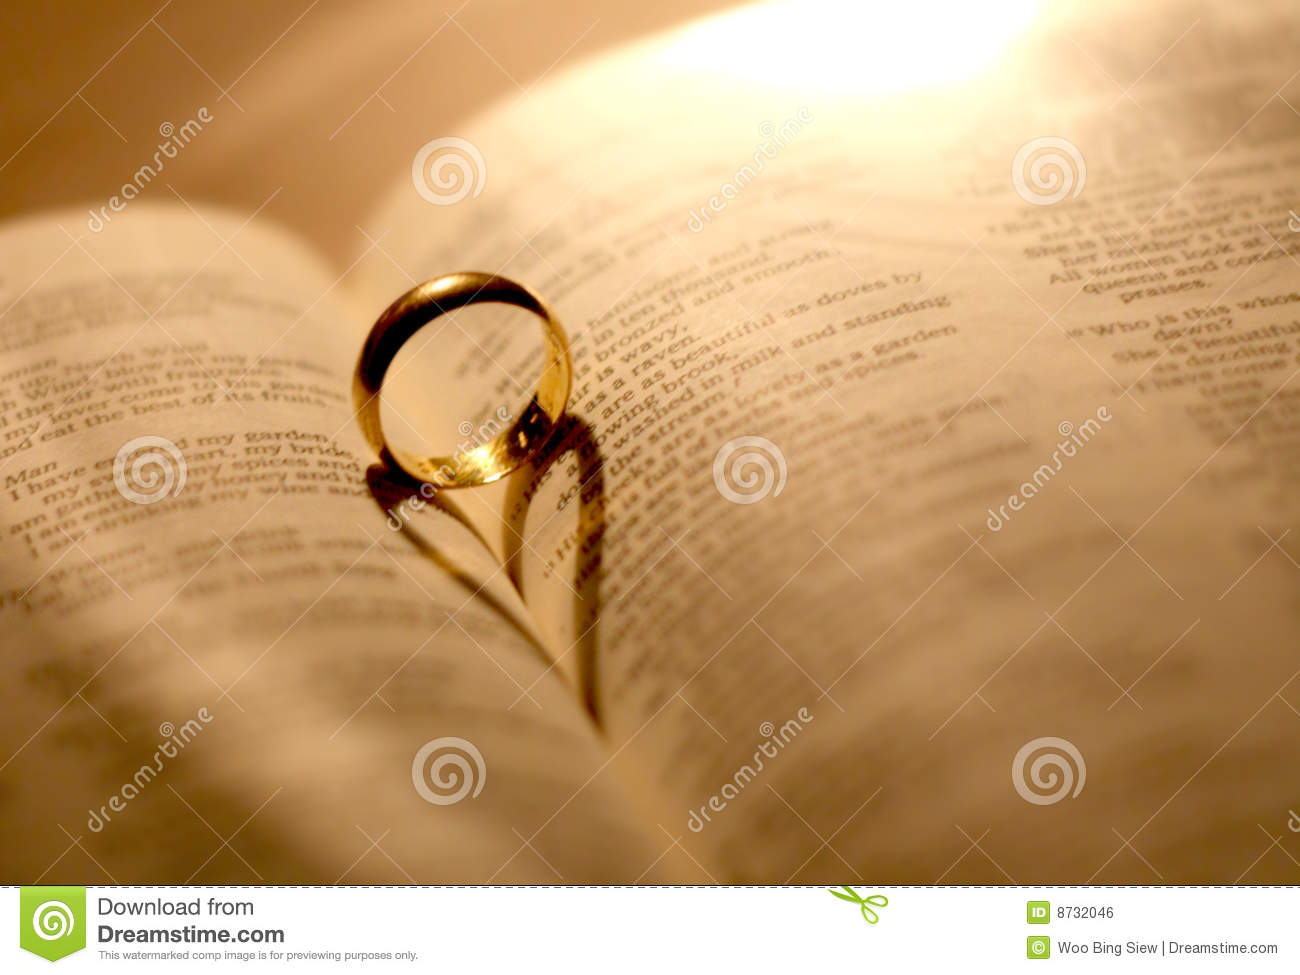 marriage to rings open on wedding a ring picture scripture stock at celebration bible online